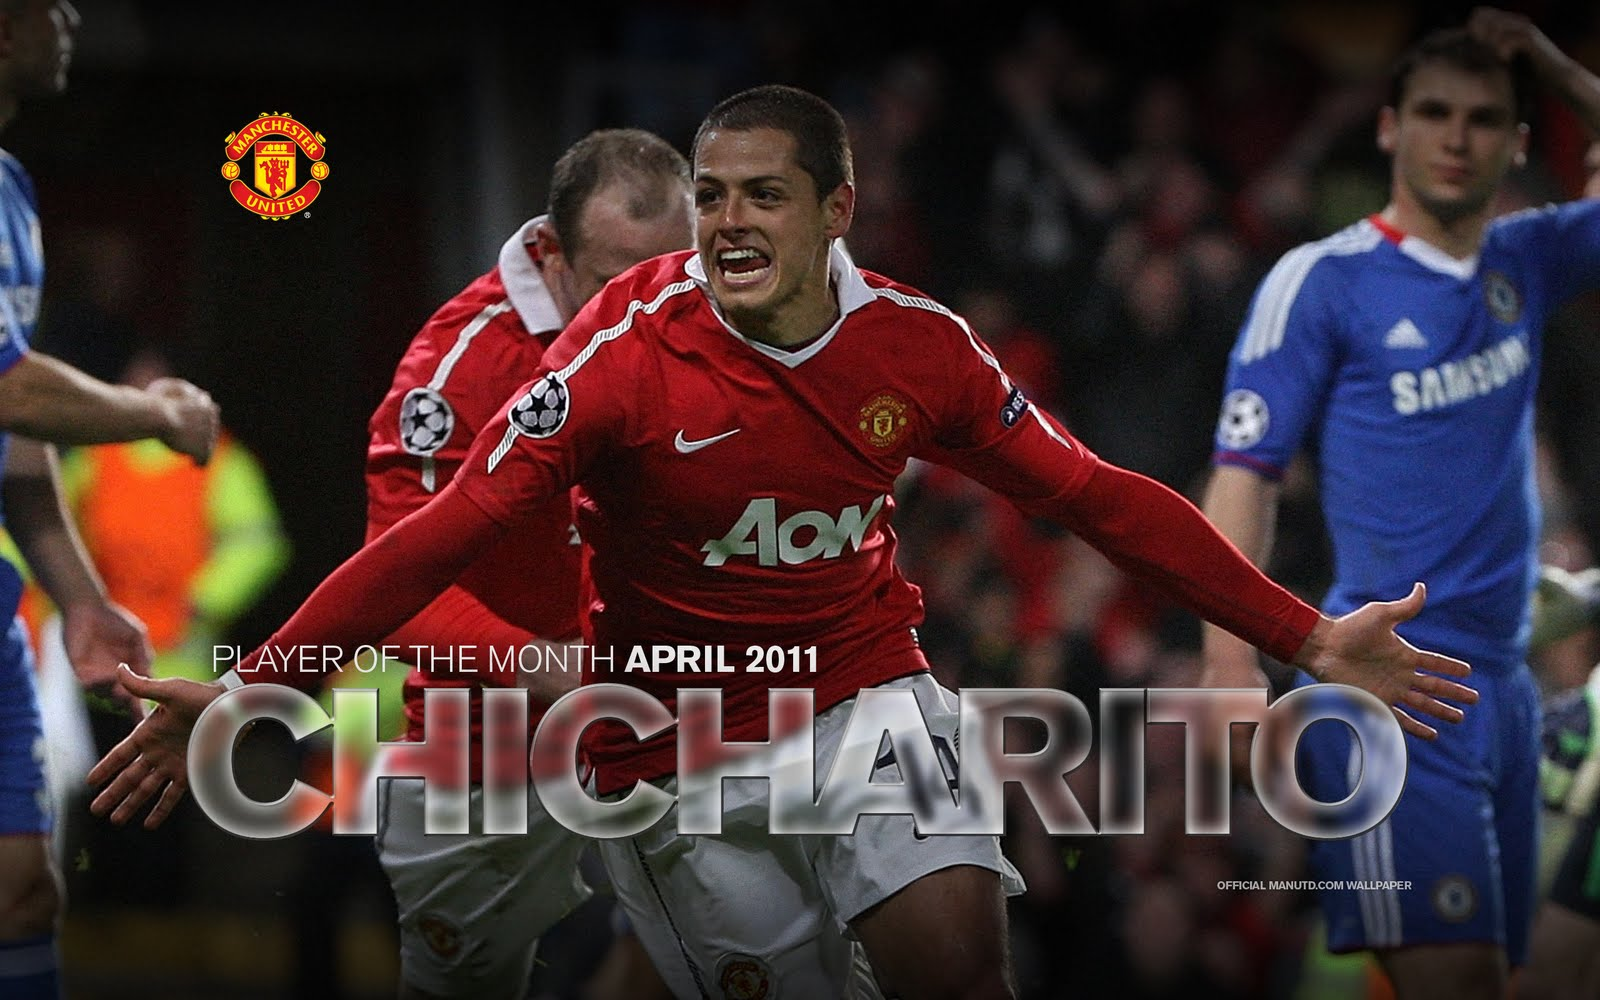 Manchester United Wallpaper Android Phone: Javier